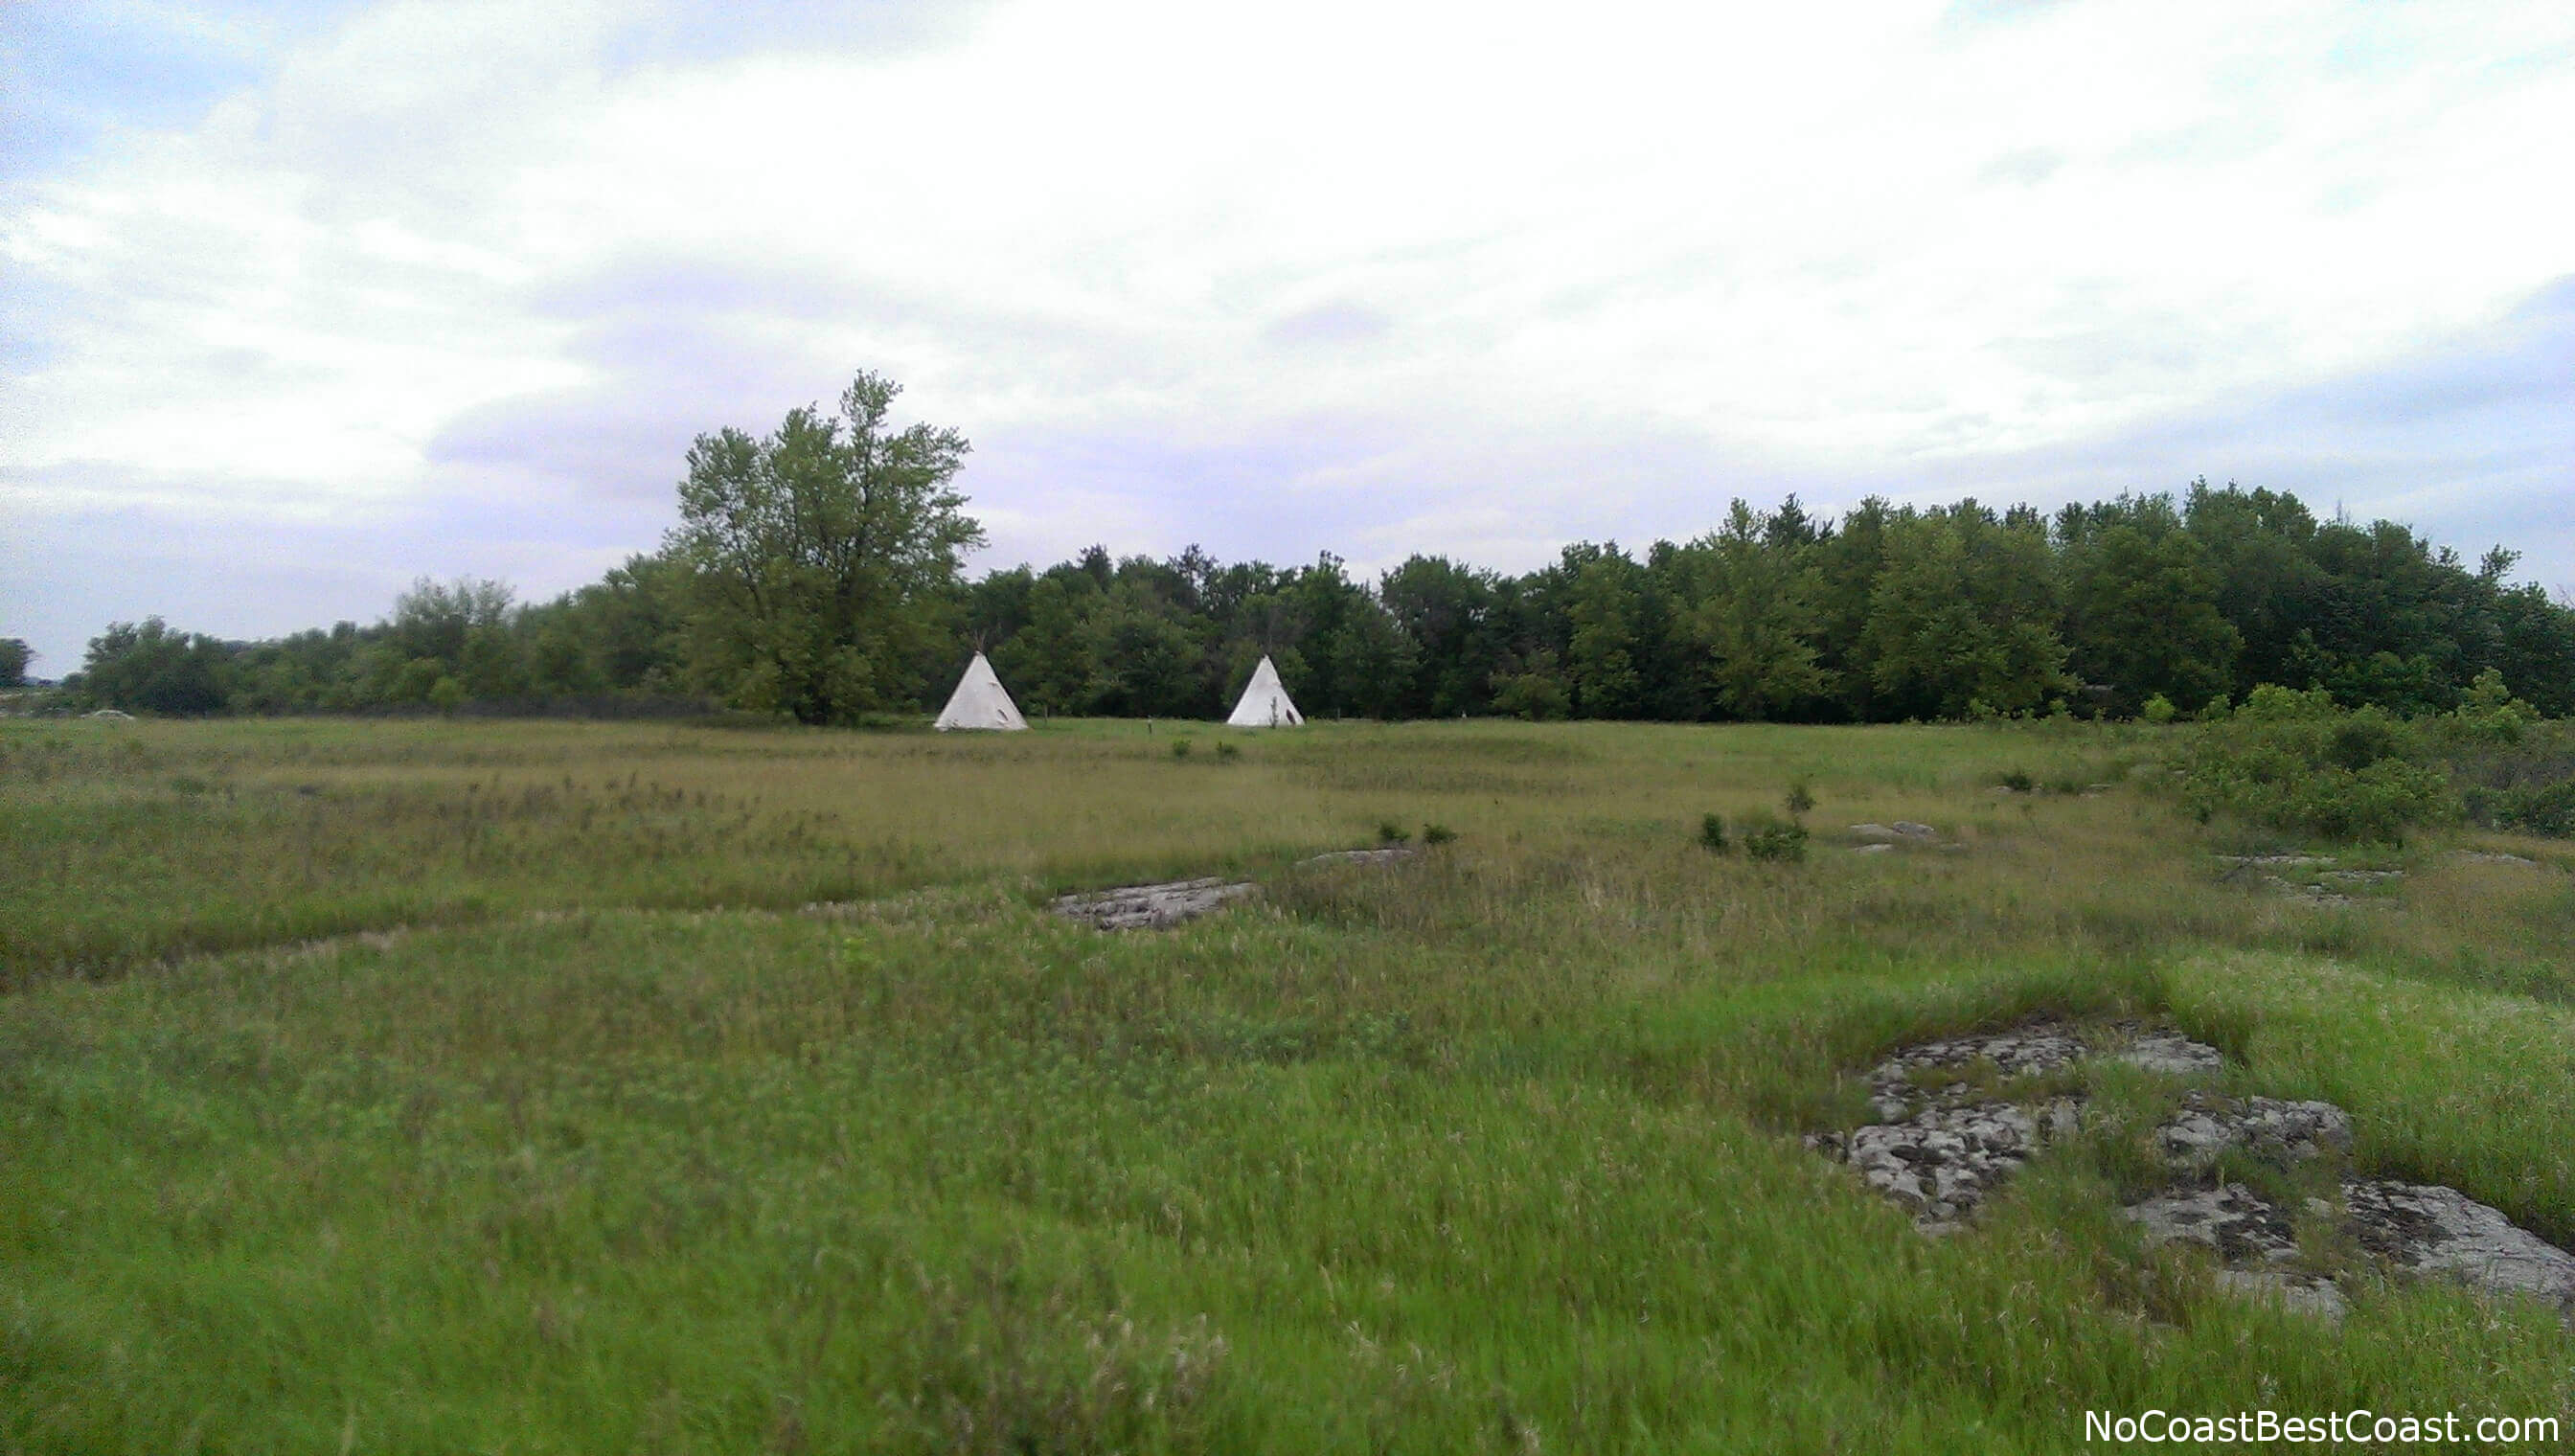 Believe it or not, you can book a stay in one of these teepees